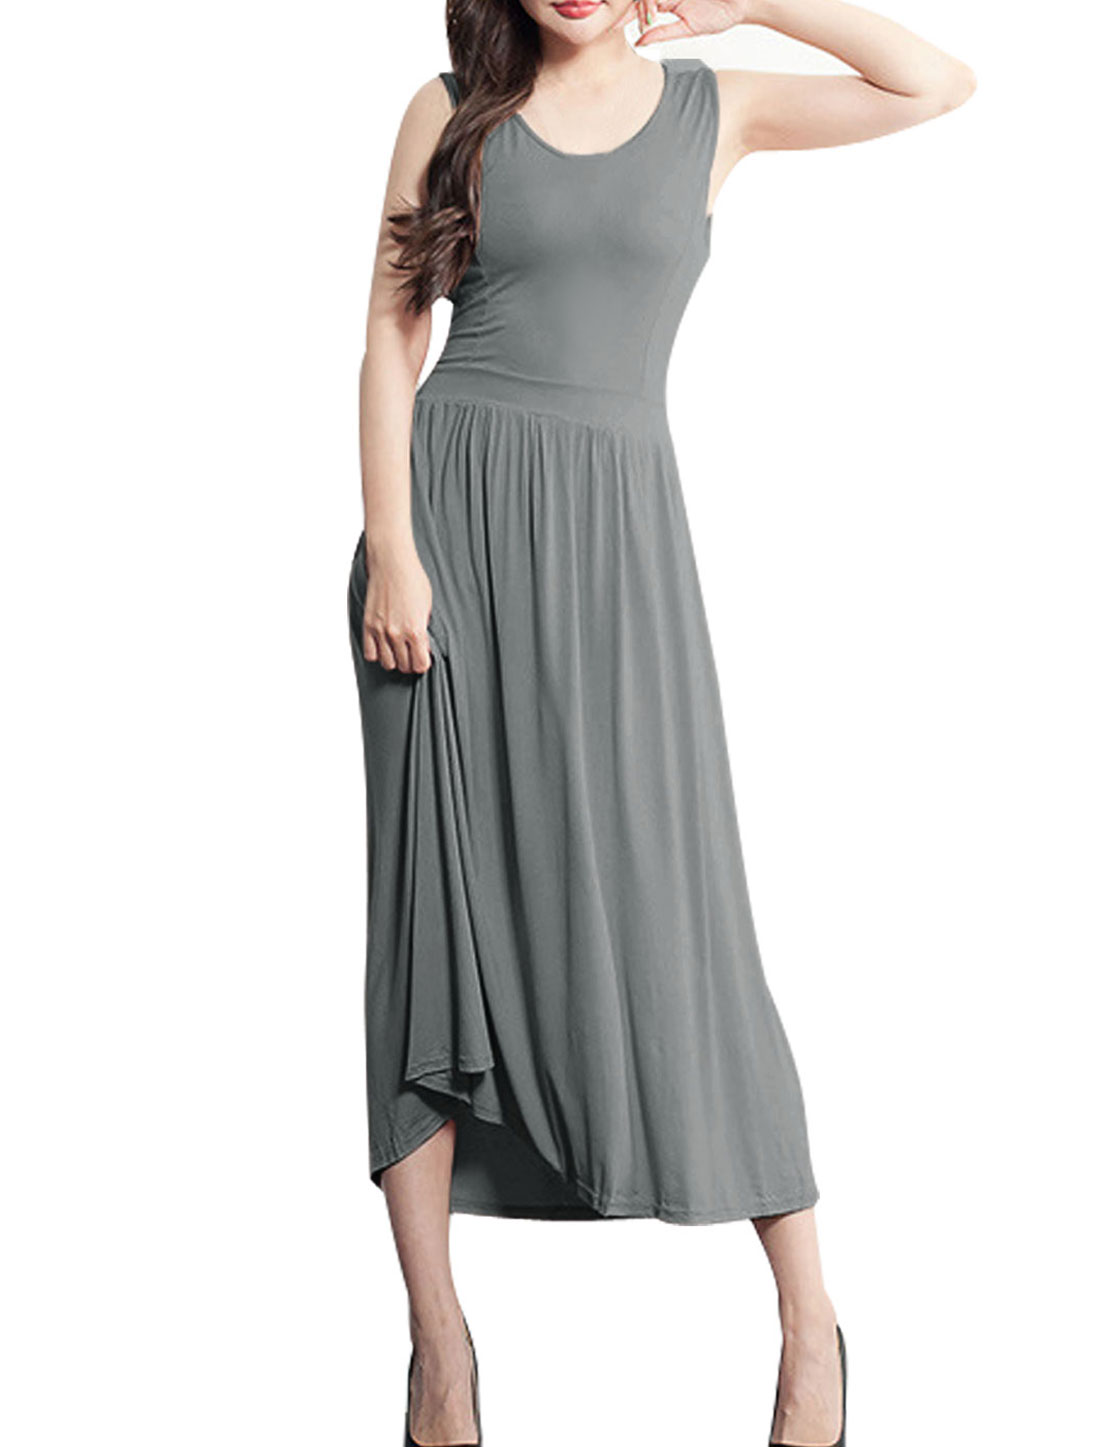 Lady's Sleeveless Cut Out Back Mid-Calf Tank Dress Dark Gray XS